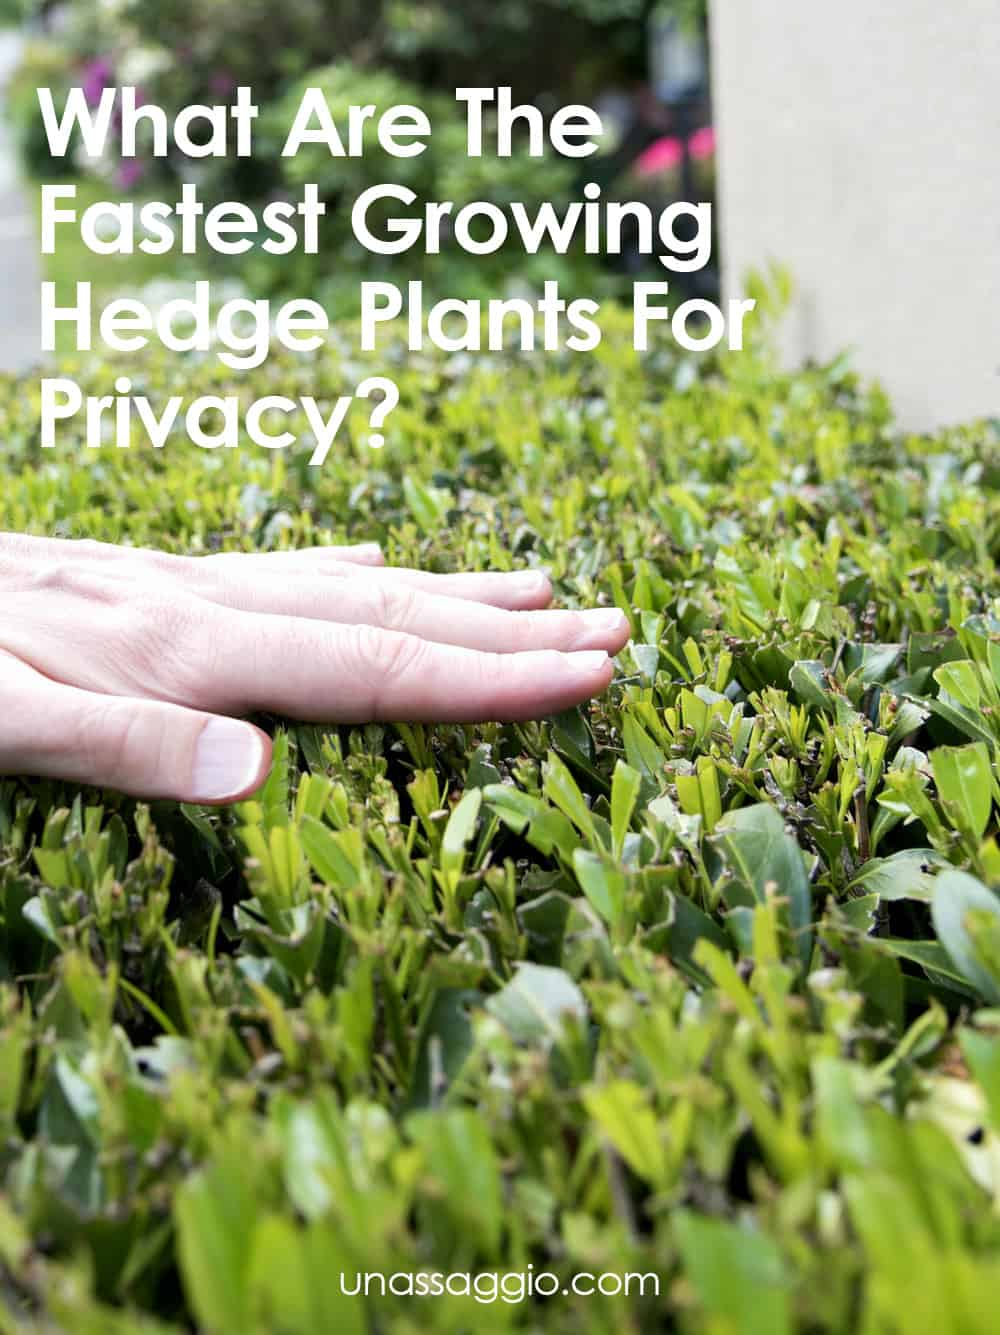 What Are The Fastest Growing Hedge Plants For Privacy Un Assaggio